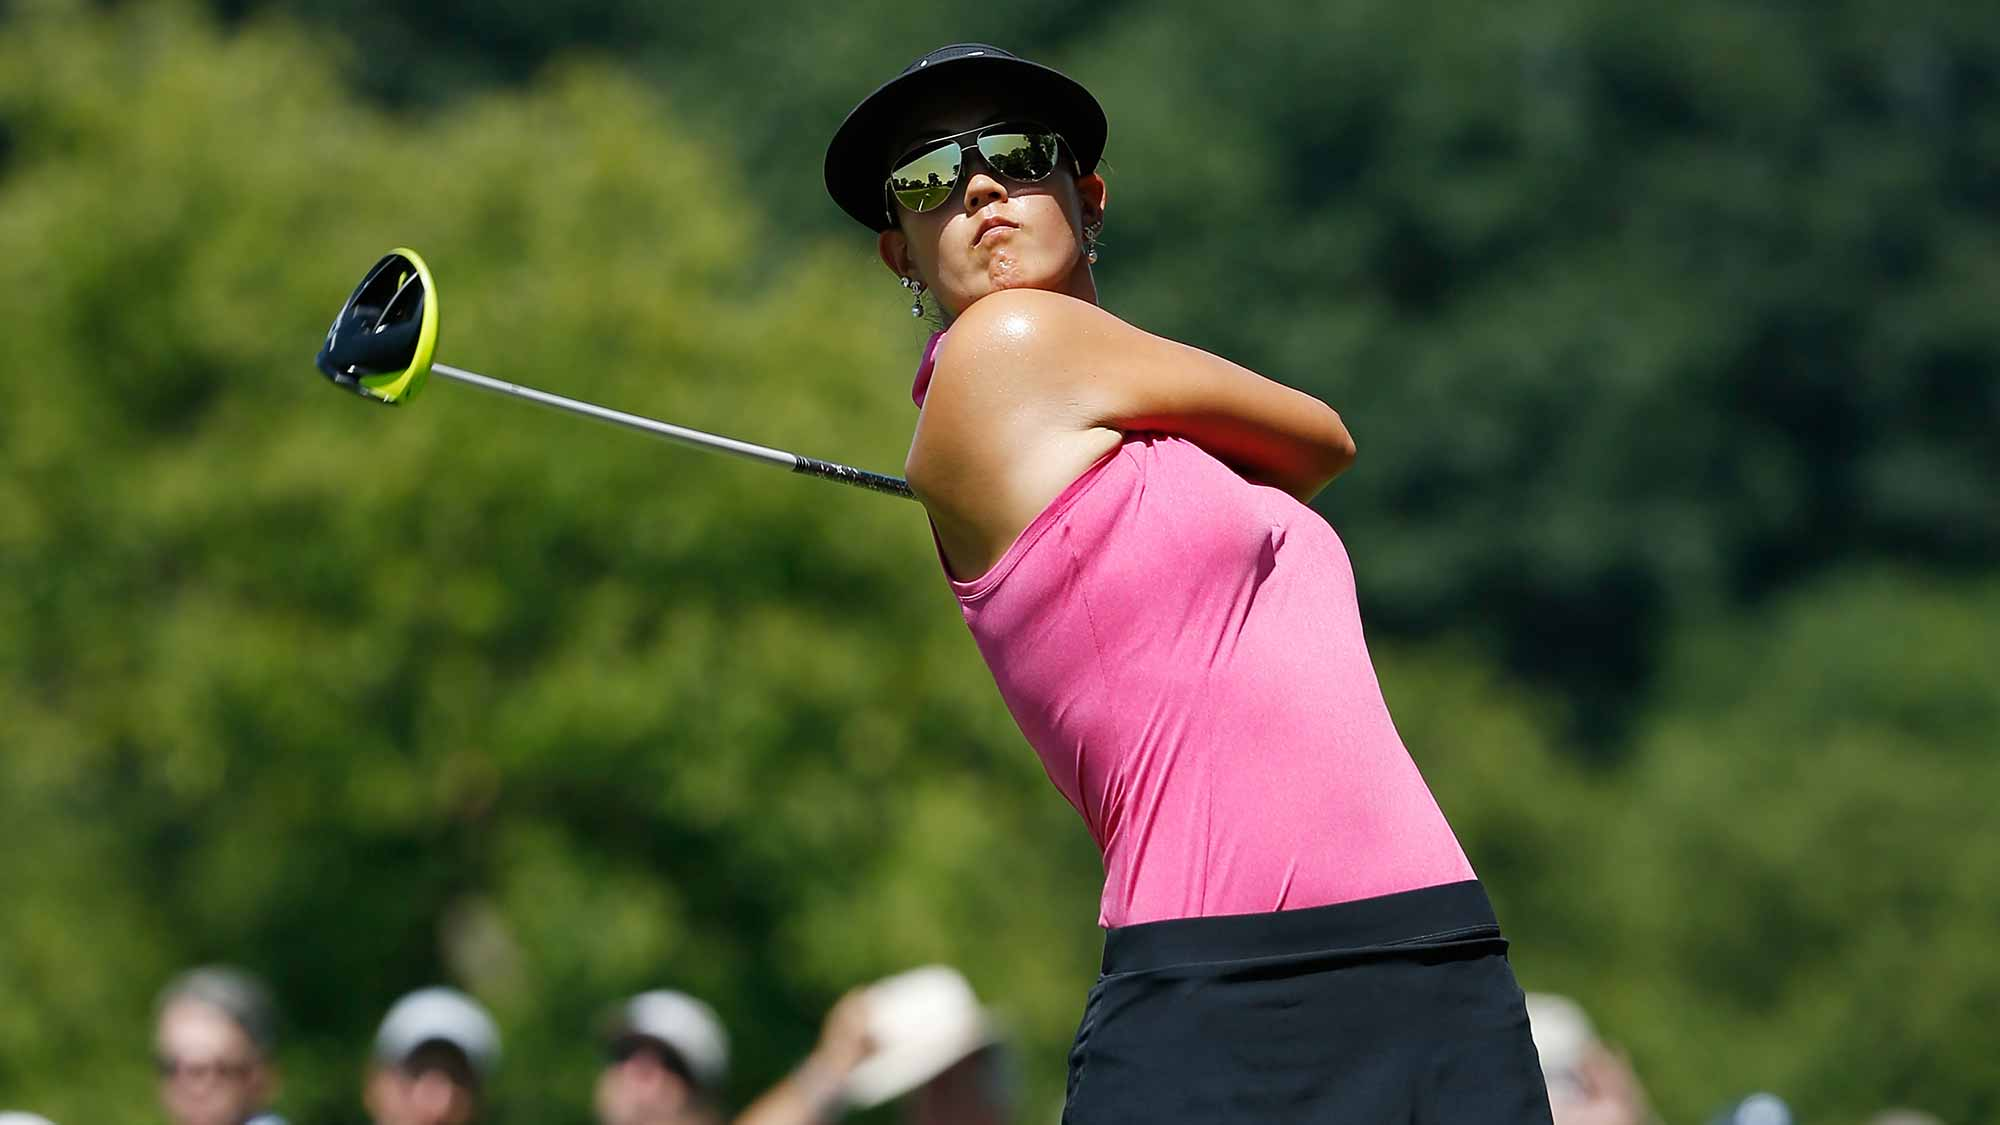 Michelle Wie of the United Staes hits her tee shot on the ninth hole during the third round of the U.S. Women's Open at Lancaster Country Club